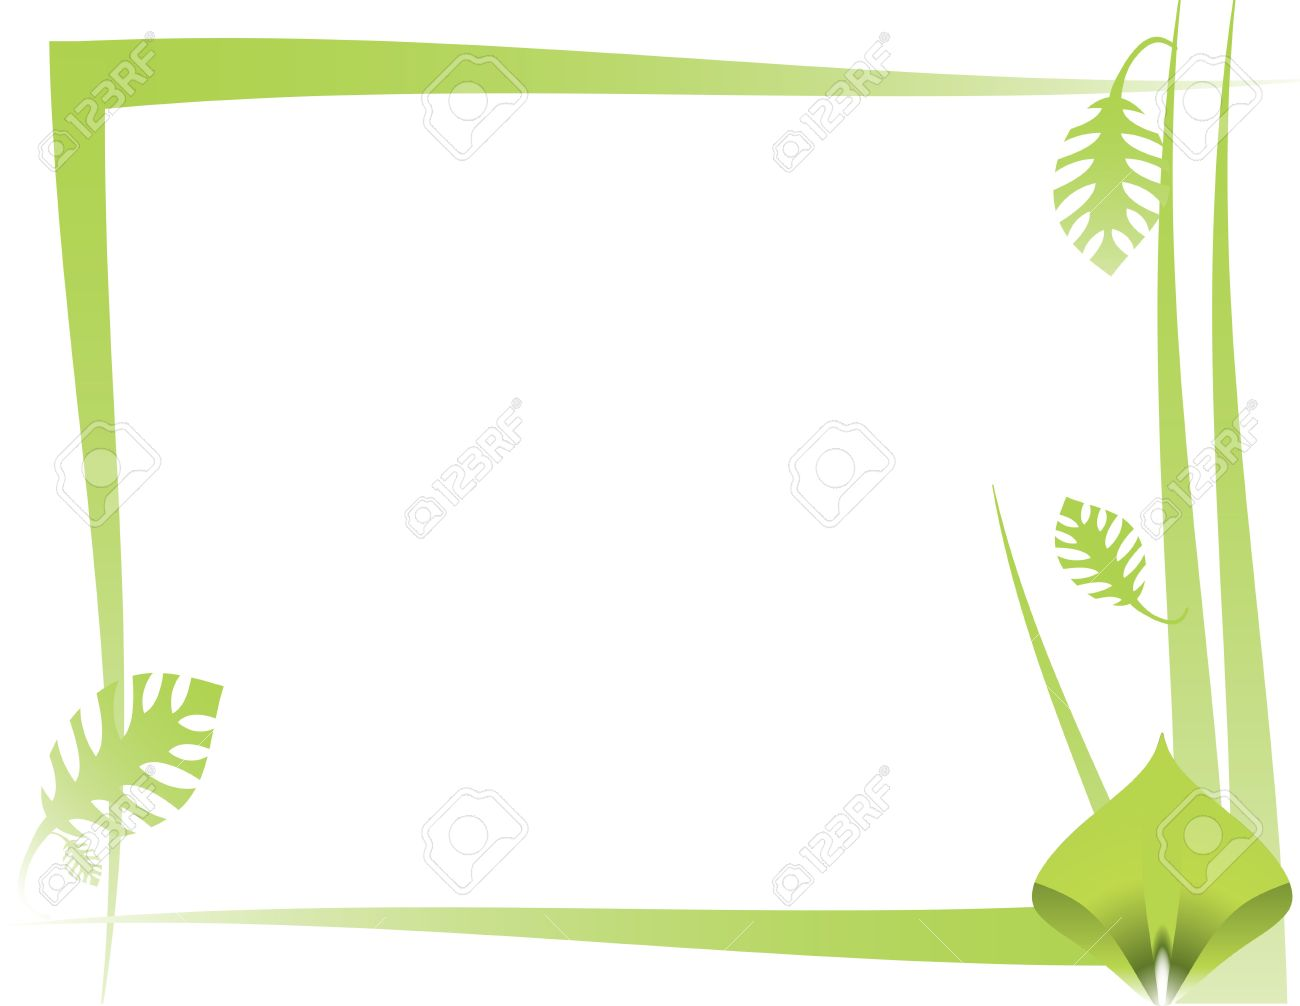 Green Leaf And Abstract Frame Design On A White Background Stock ...